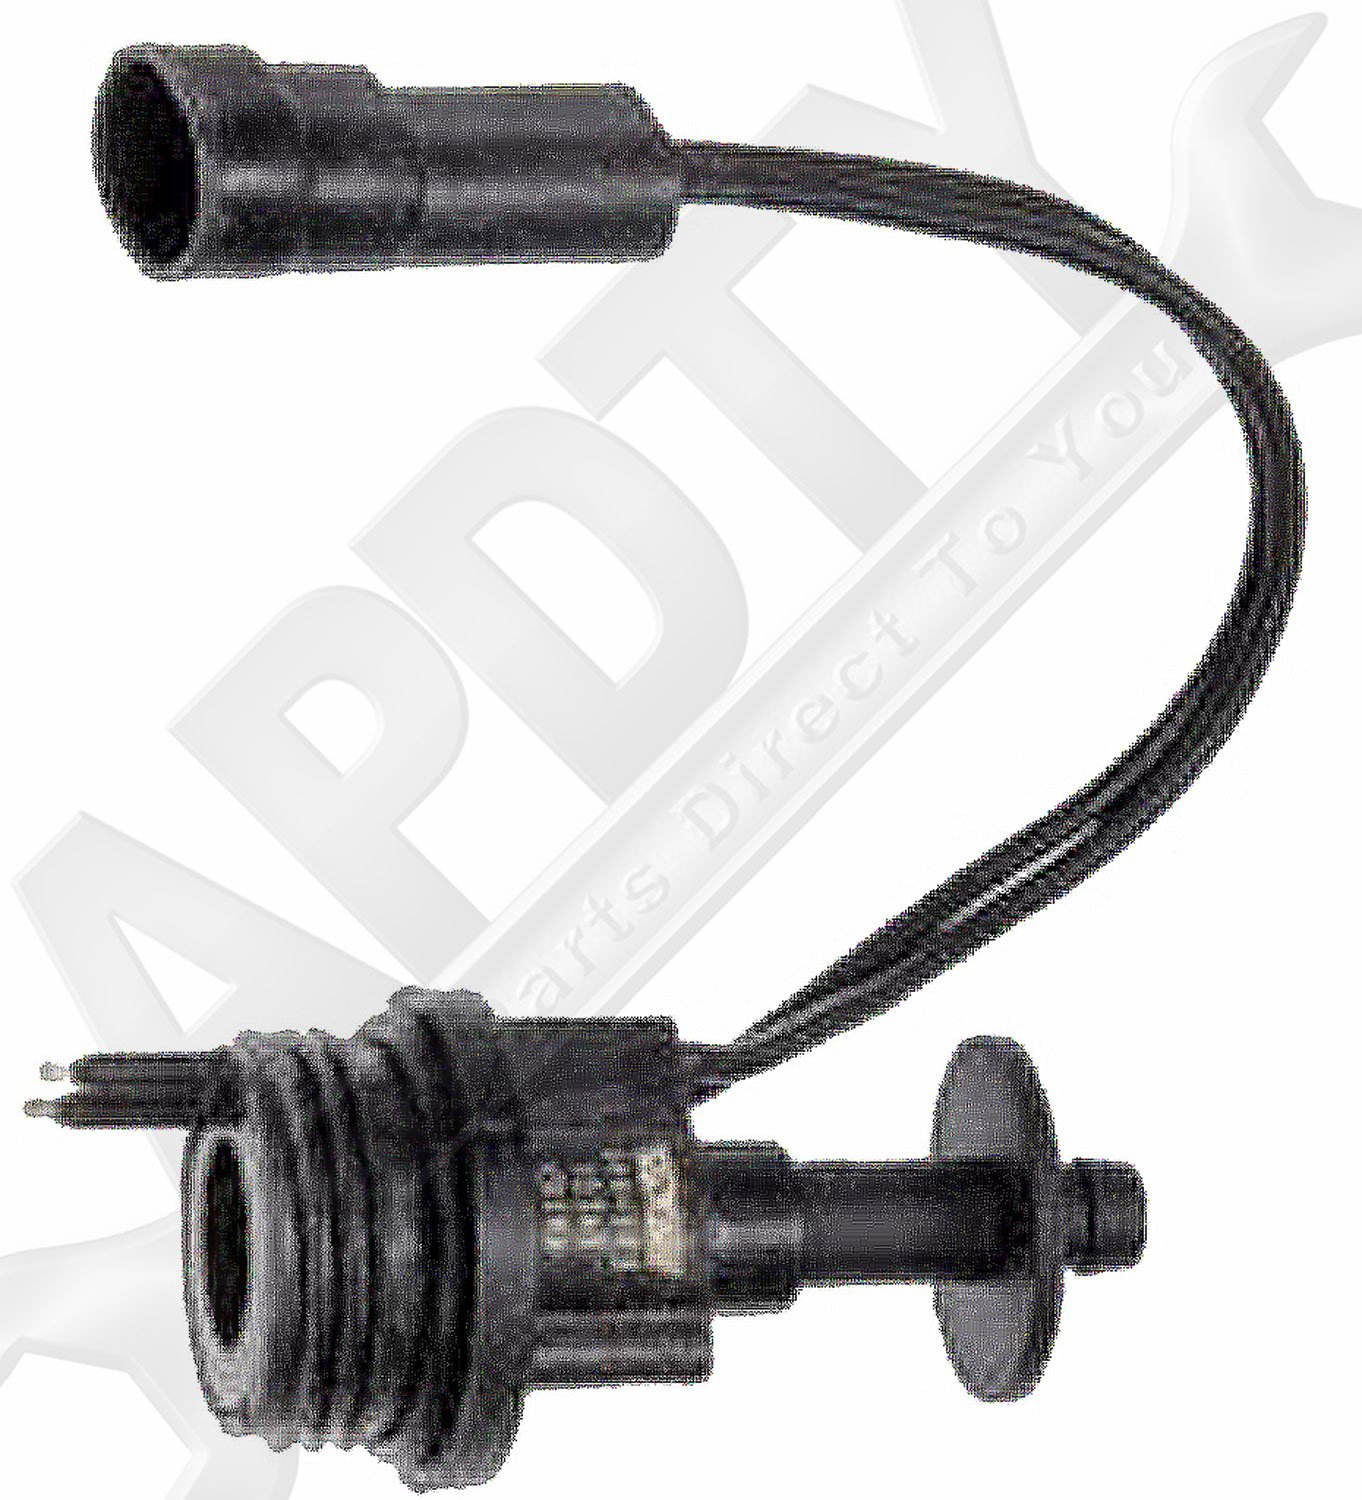 APDTY 015204 Water in Fuel Sensor With Wiring Harness Pigtail For 1989-1996 Dodge 5.9L Diesel Replaces Mopar 04429116